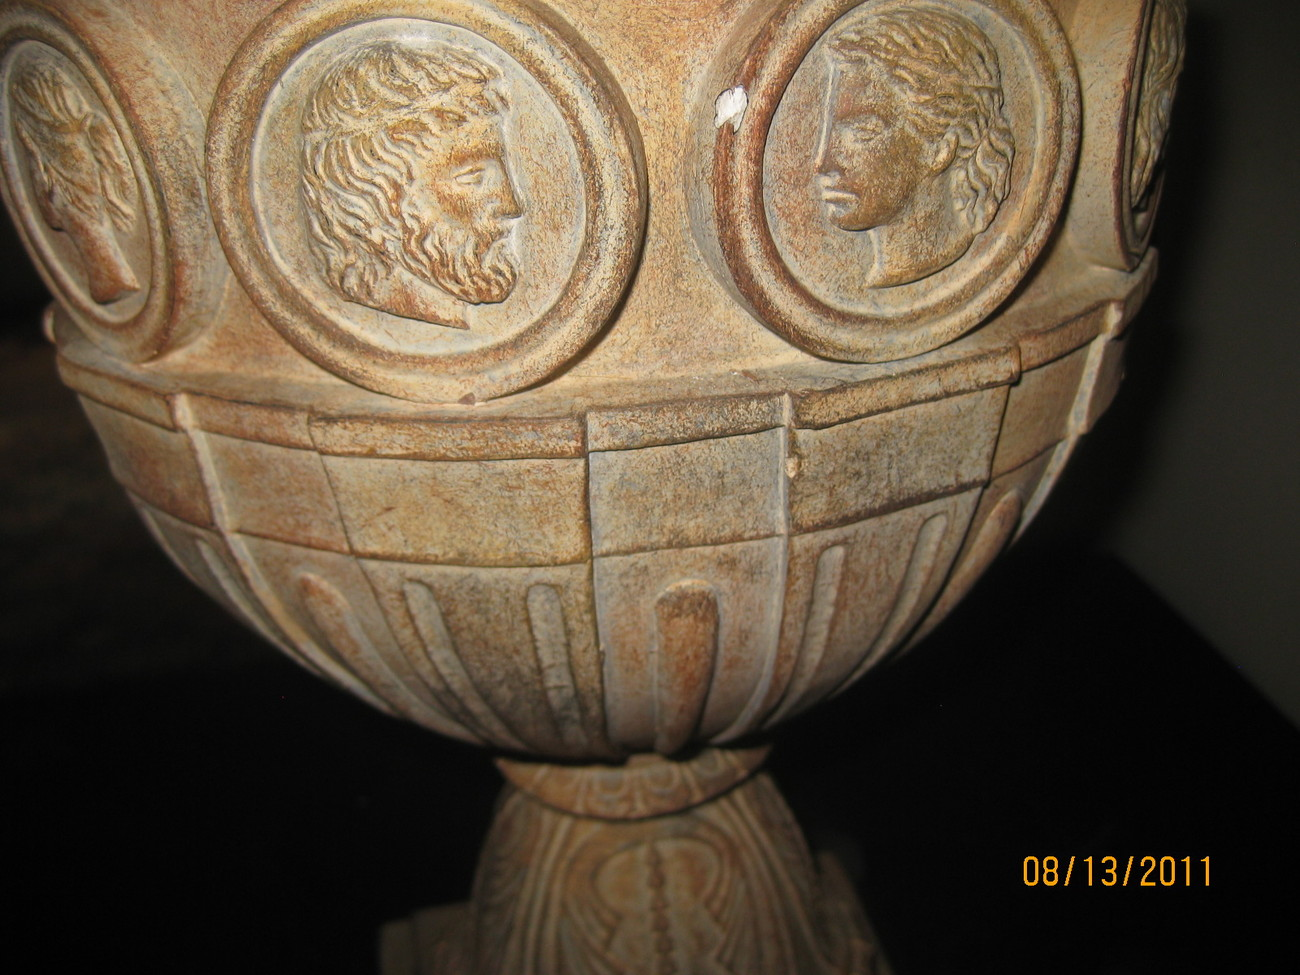 Pair of classical urn lamps with medallions